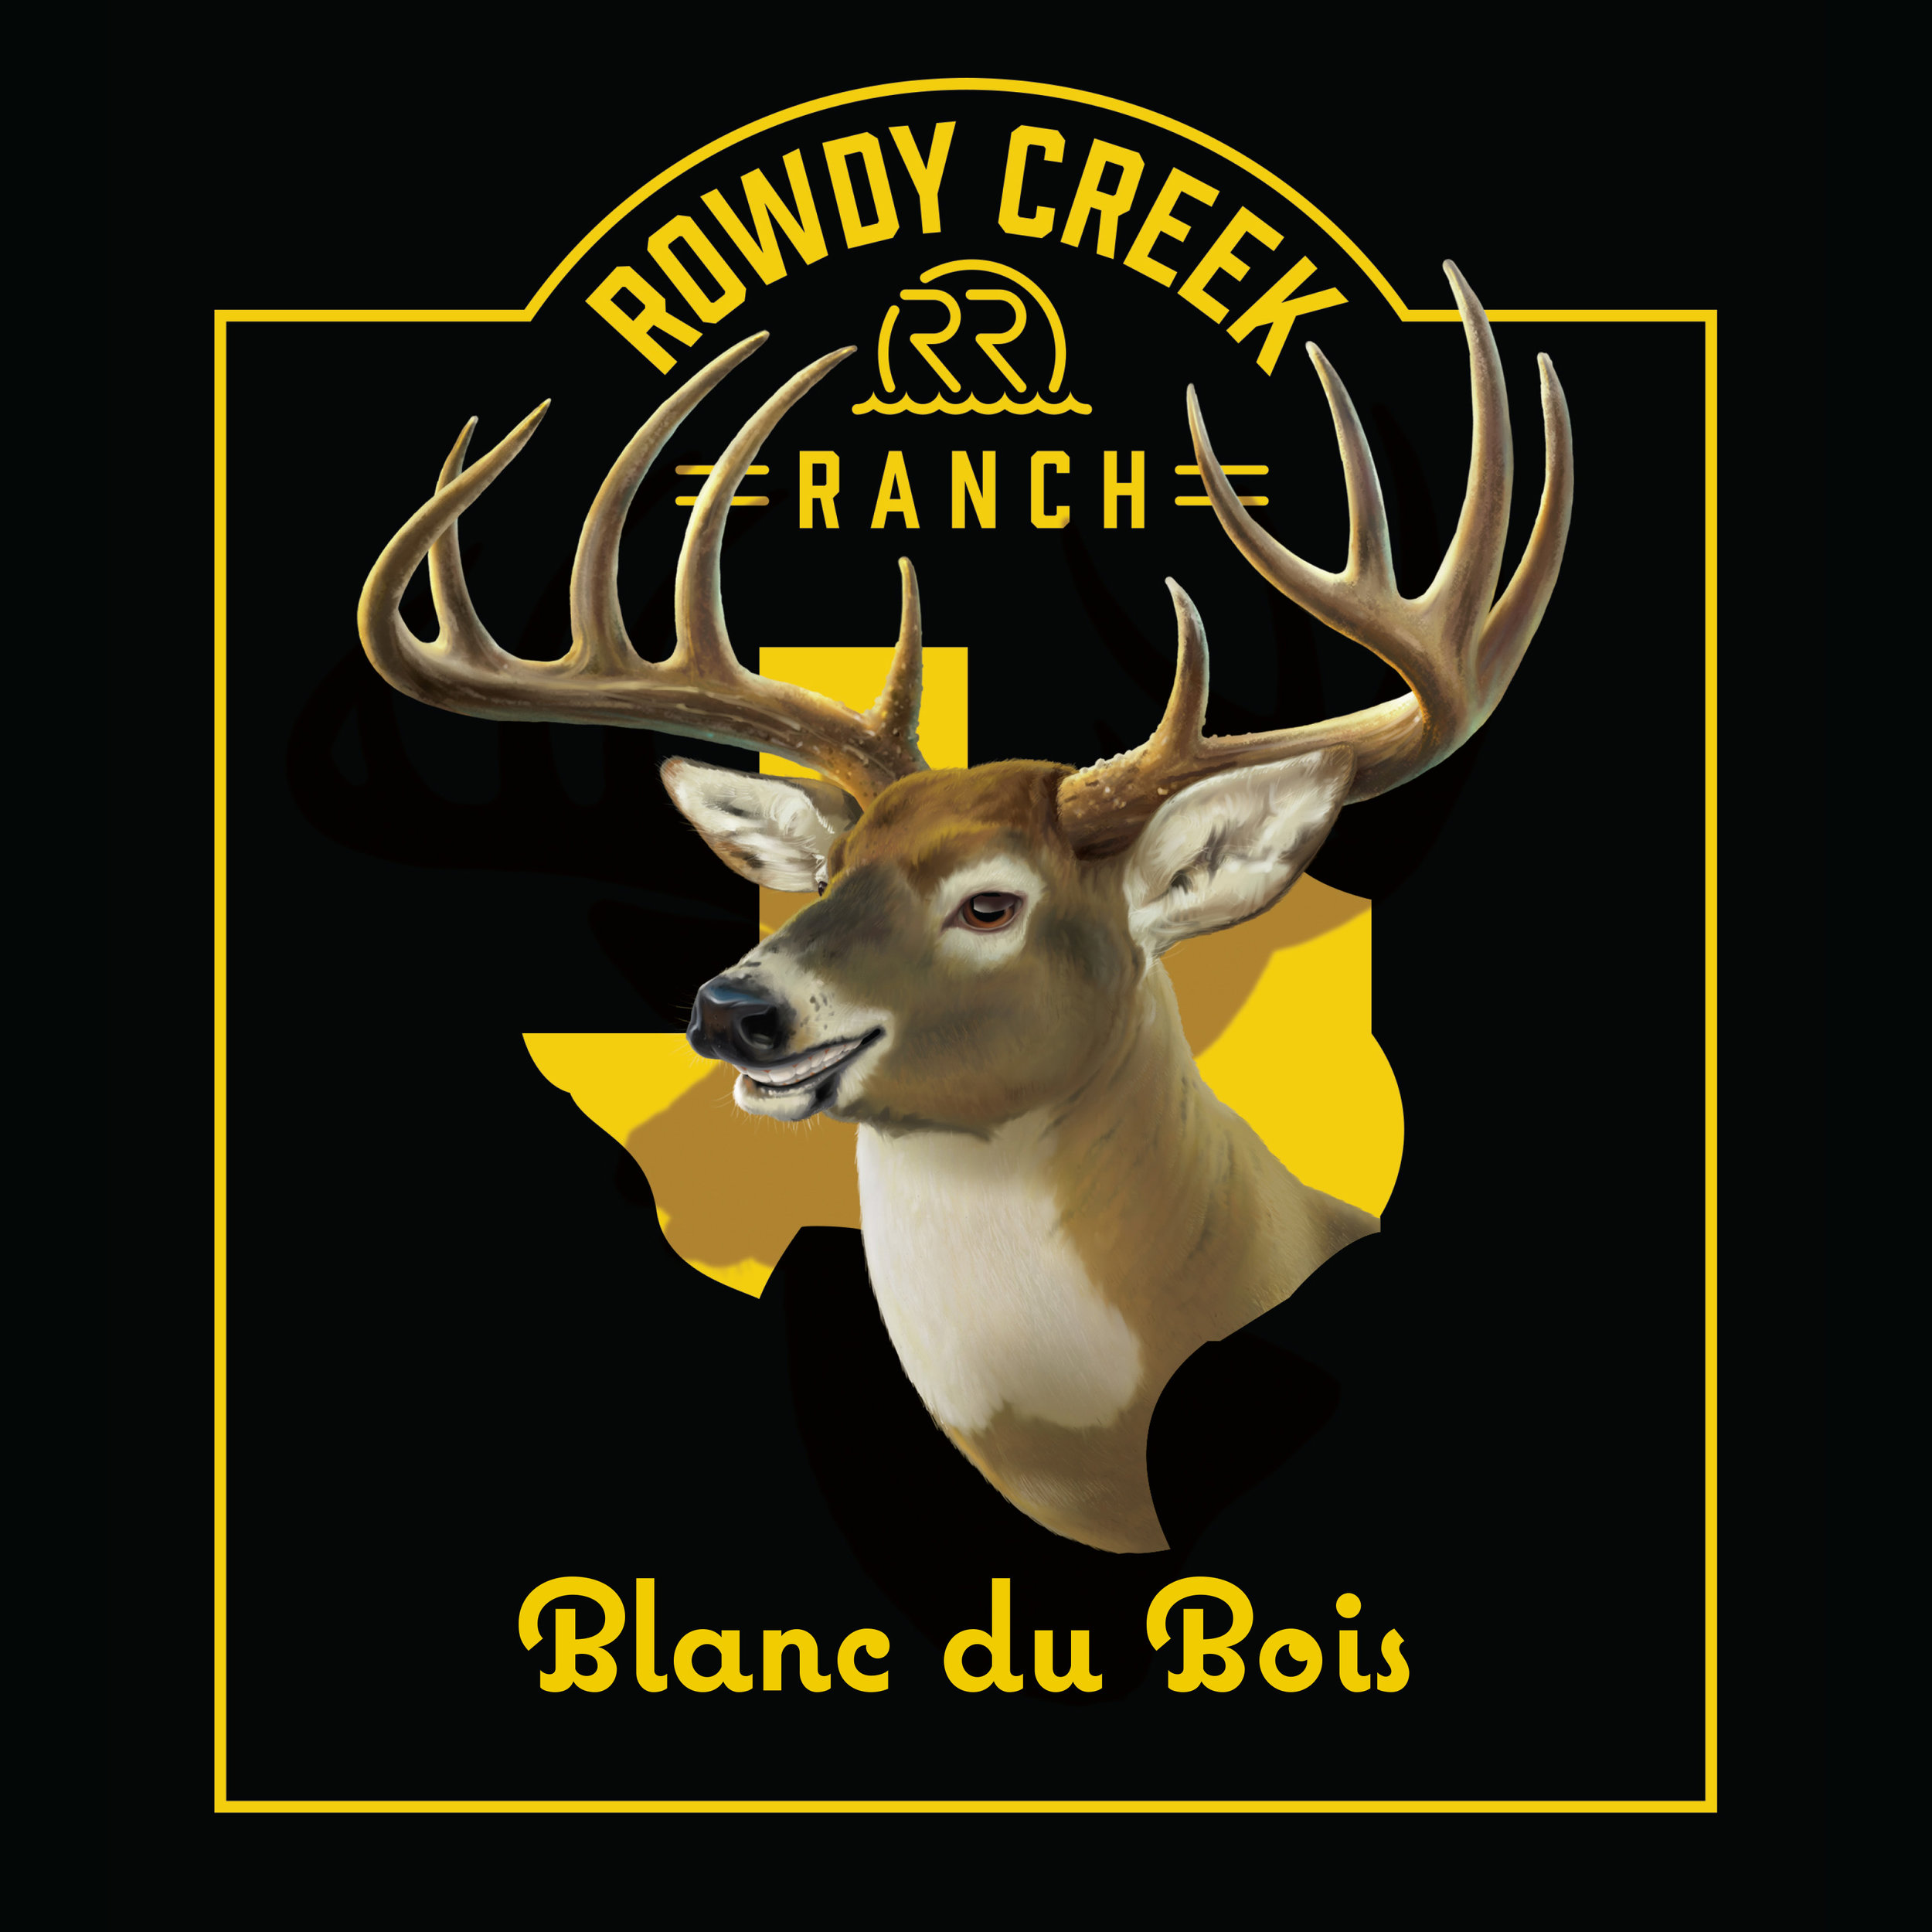 Rowdy Creek Ranch Blanc du Bois Wine Label